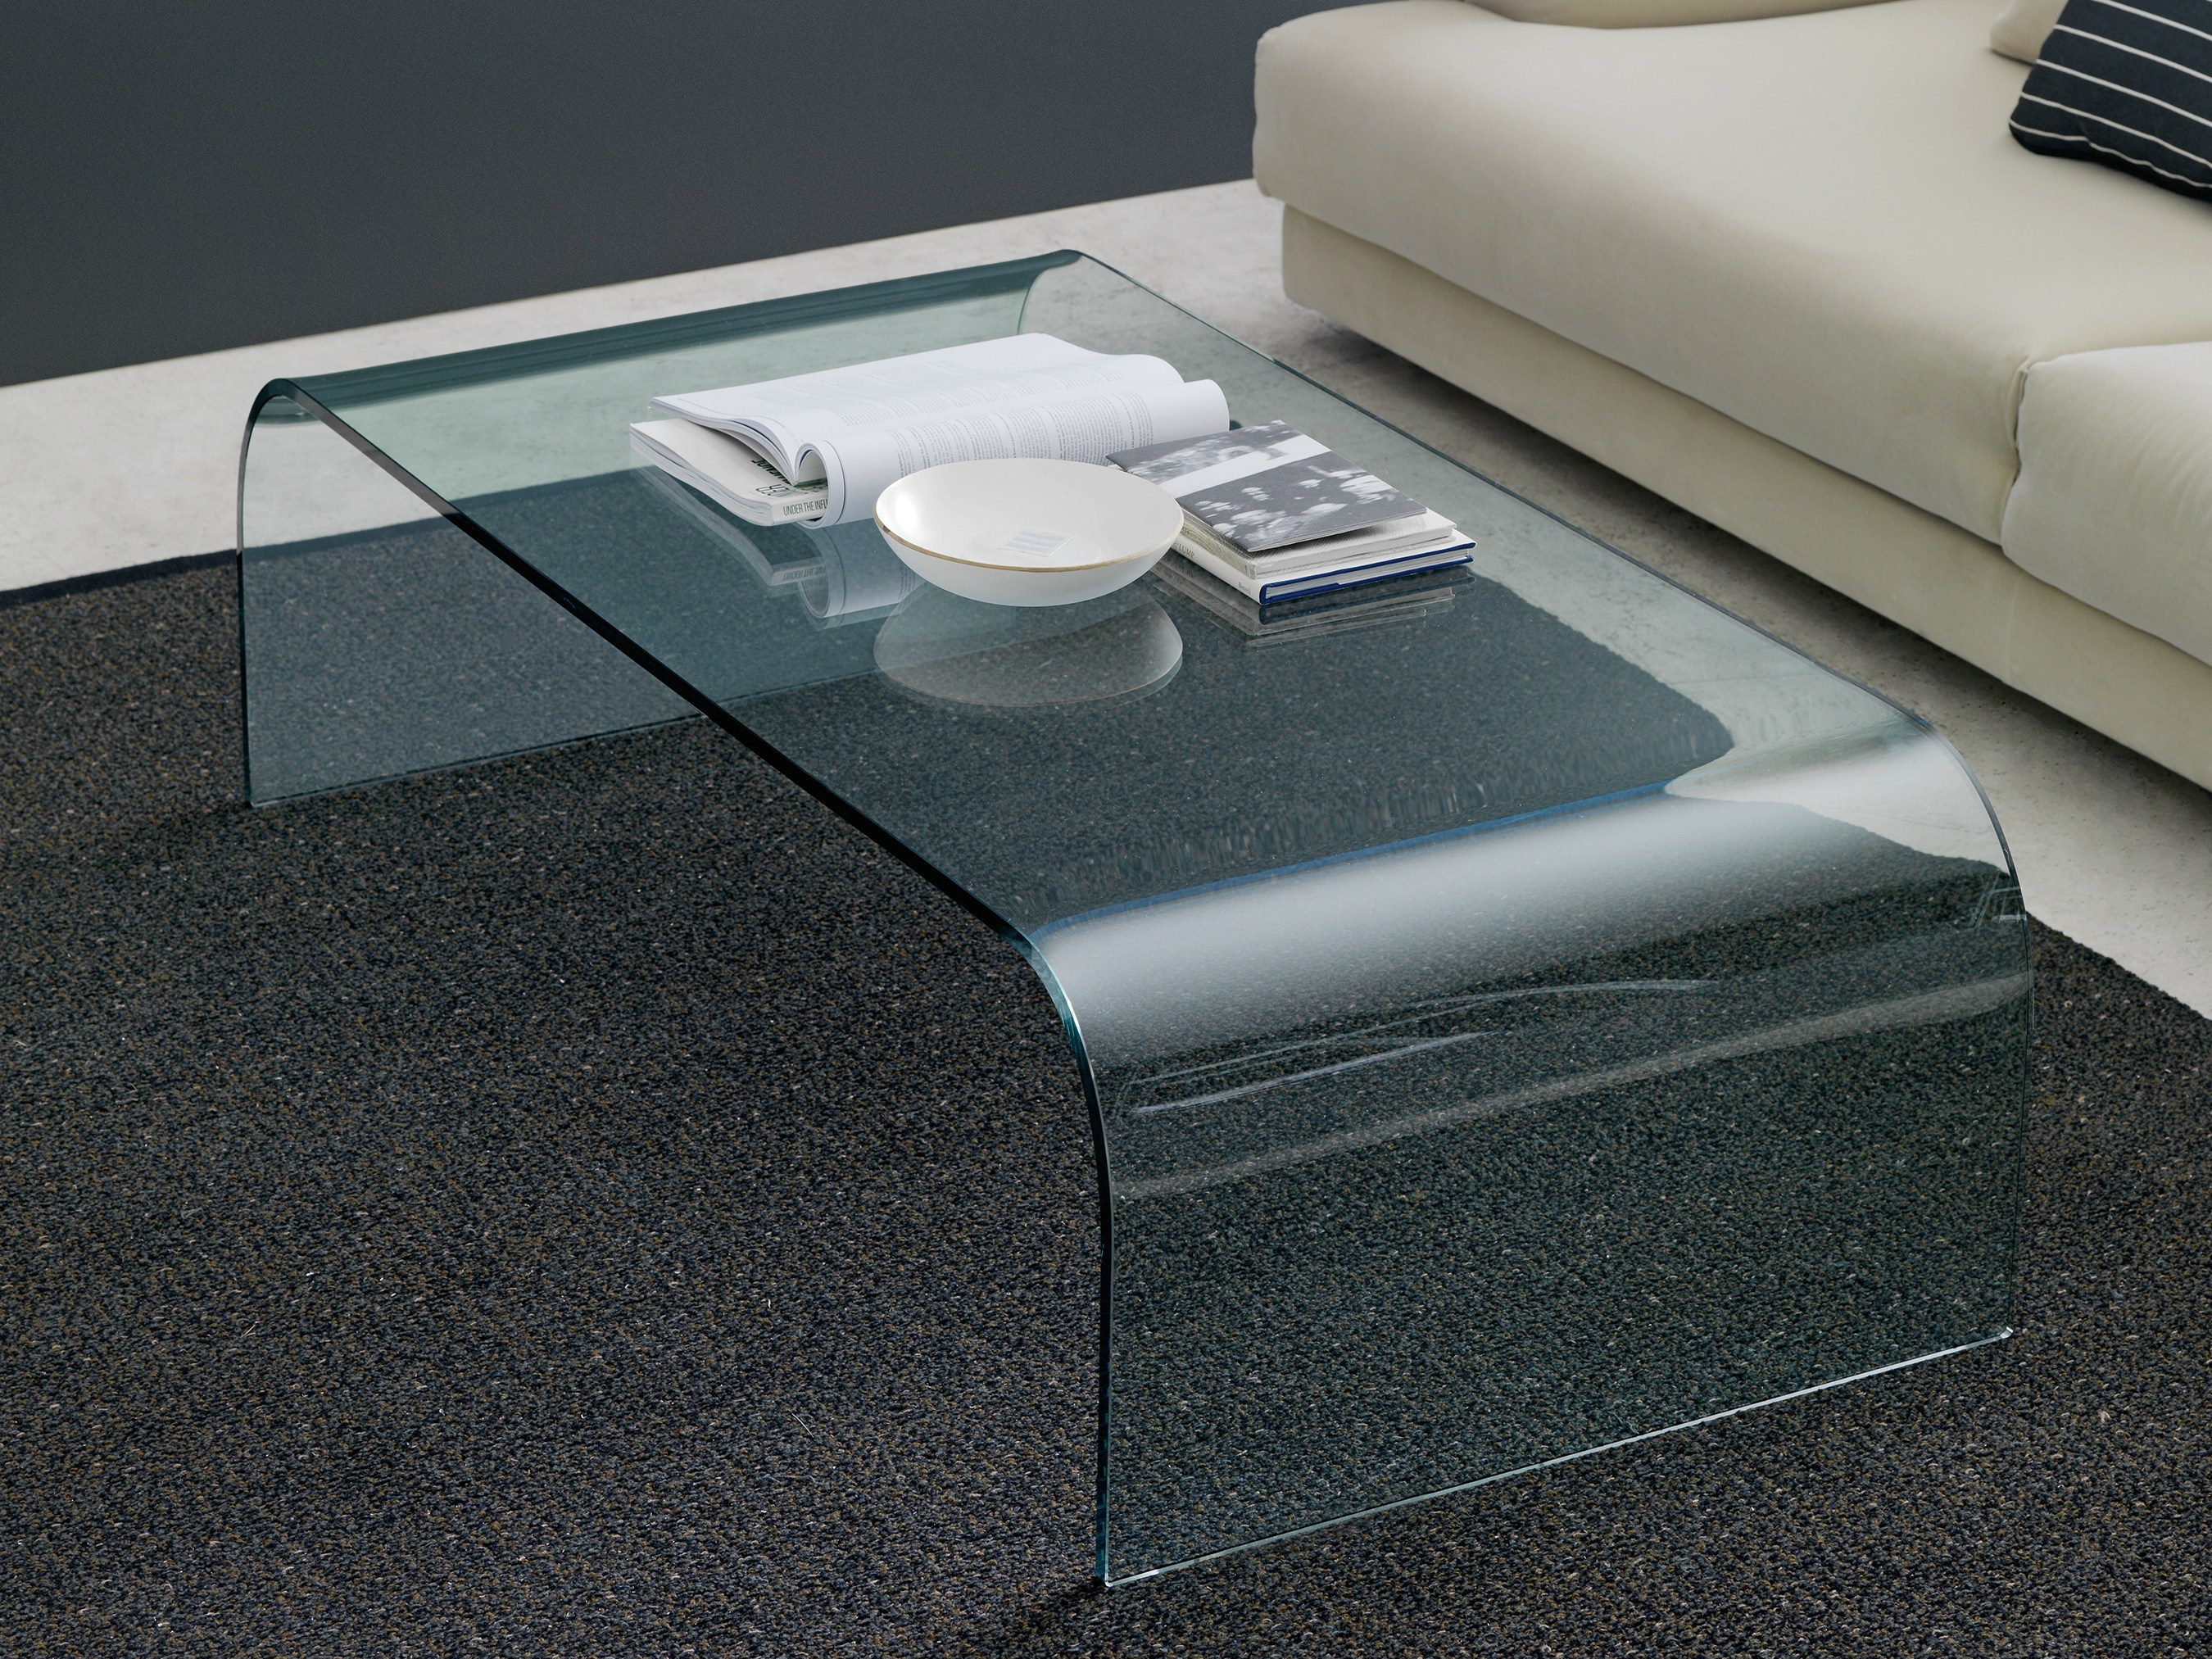 Square float glass coffee table with casters TAVOLO CON RUOTE By ...